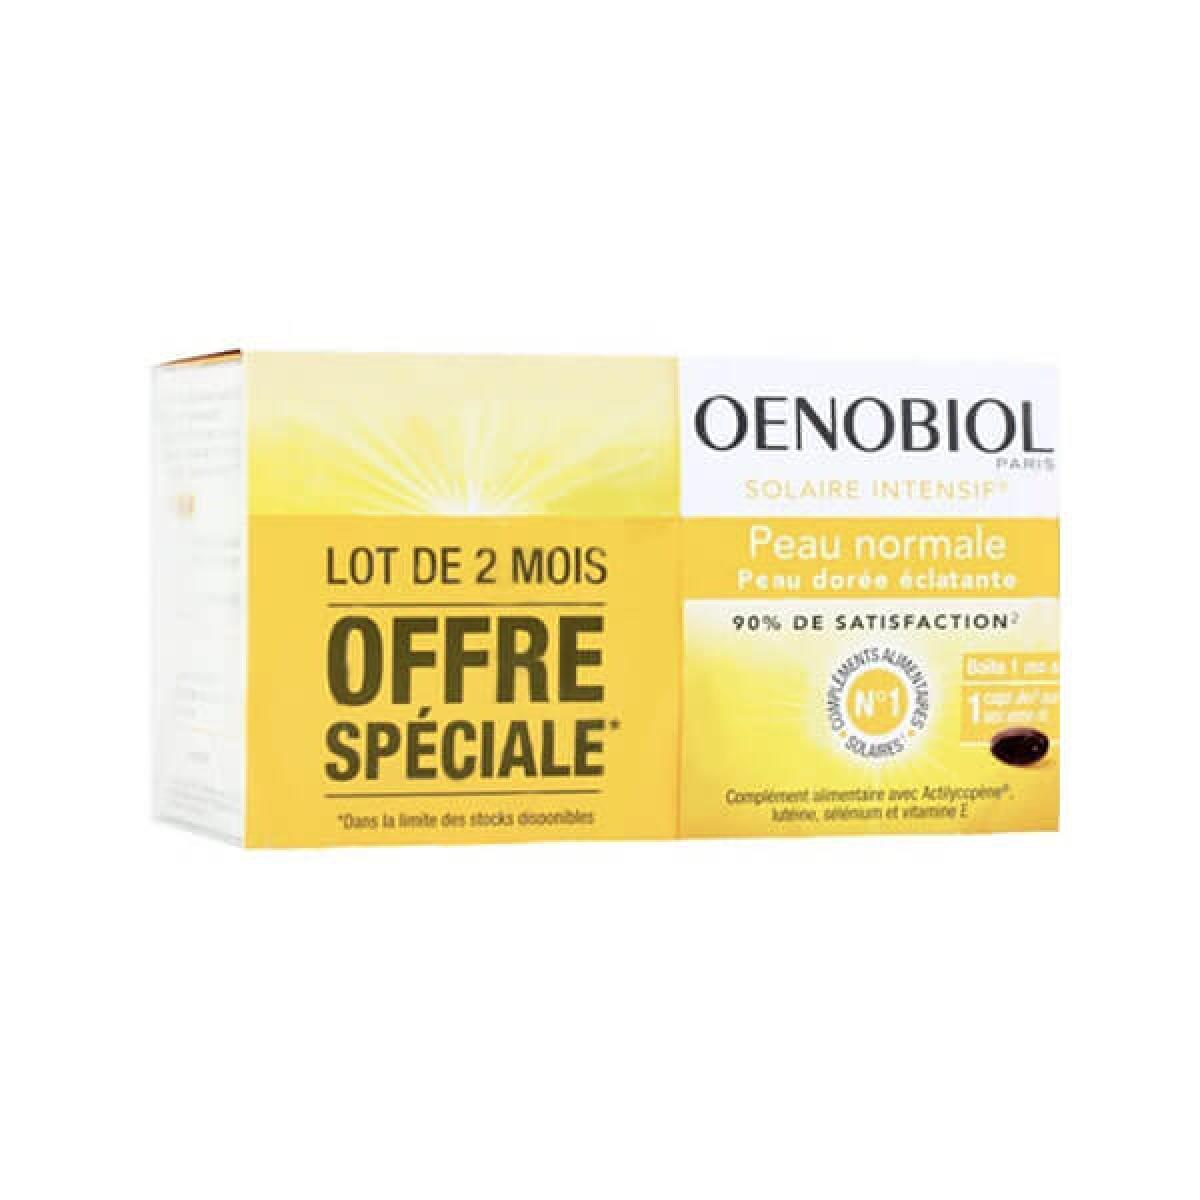 OENOBIOL Solaire intensif peau normale lot 2x30 capsules